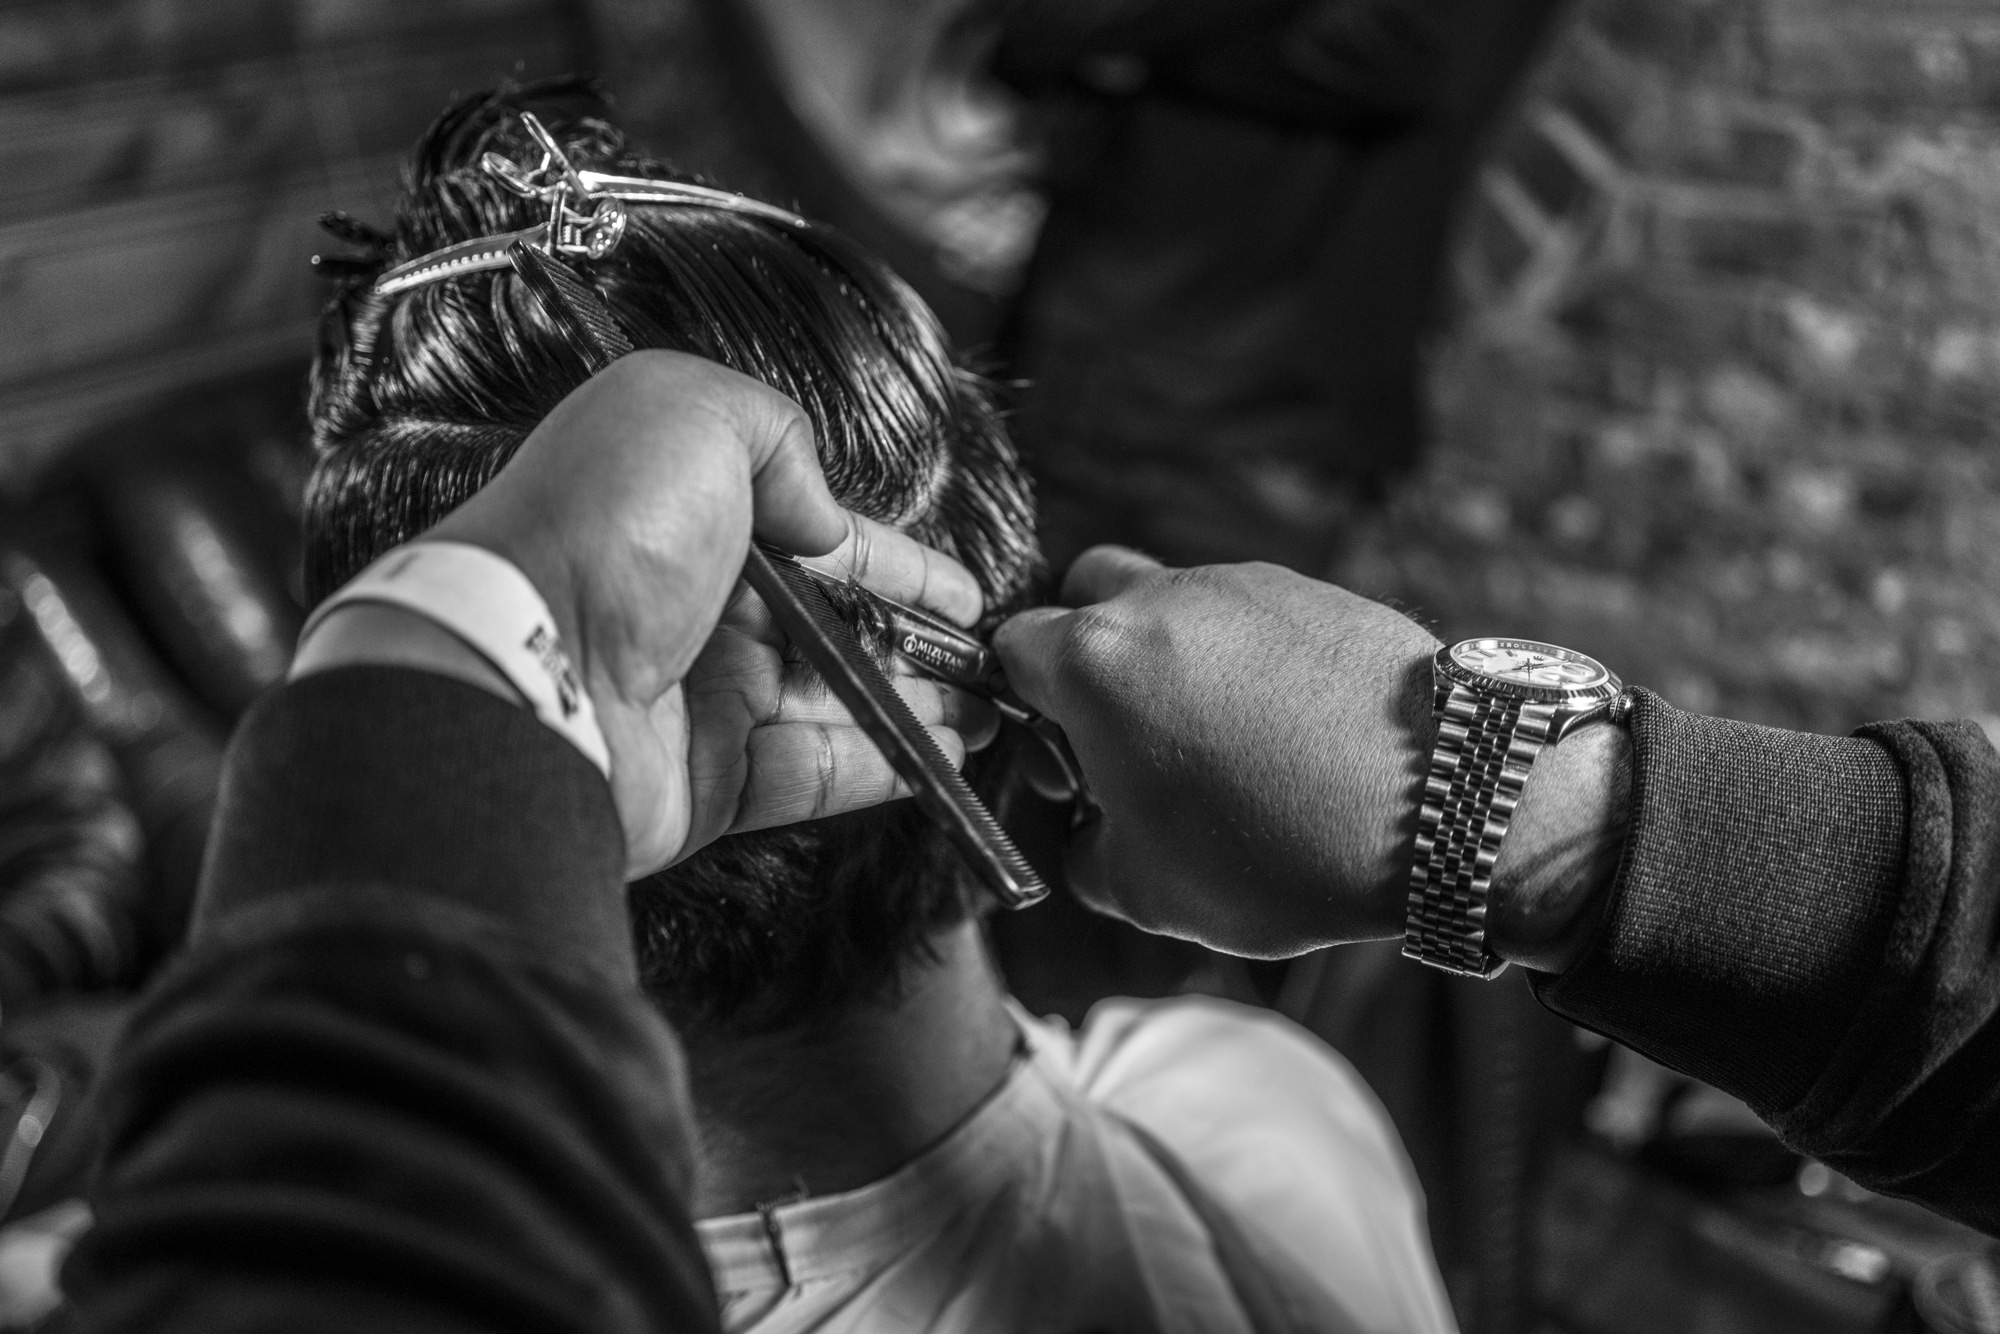 American Crew Sponsors the First Barbering and Grooming Show at the Brooklyn Bowl